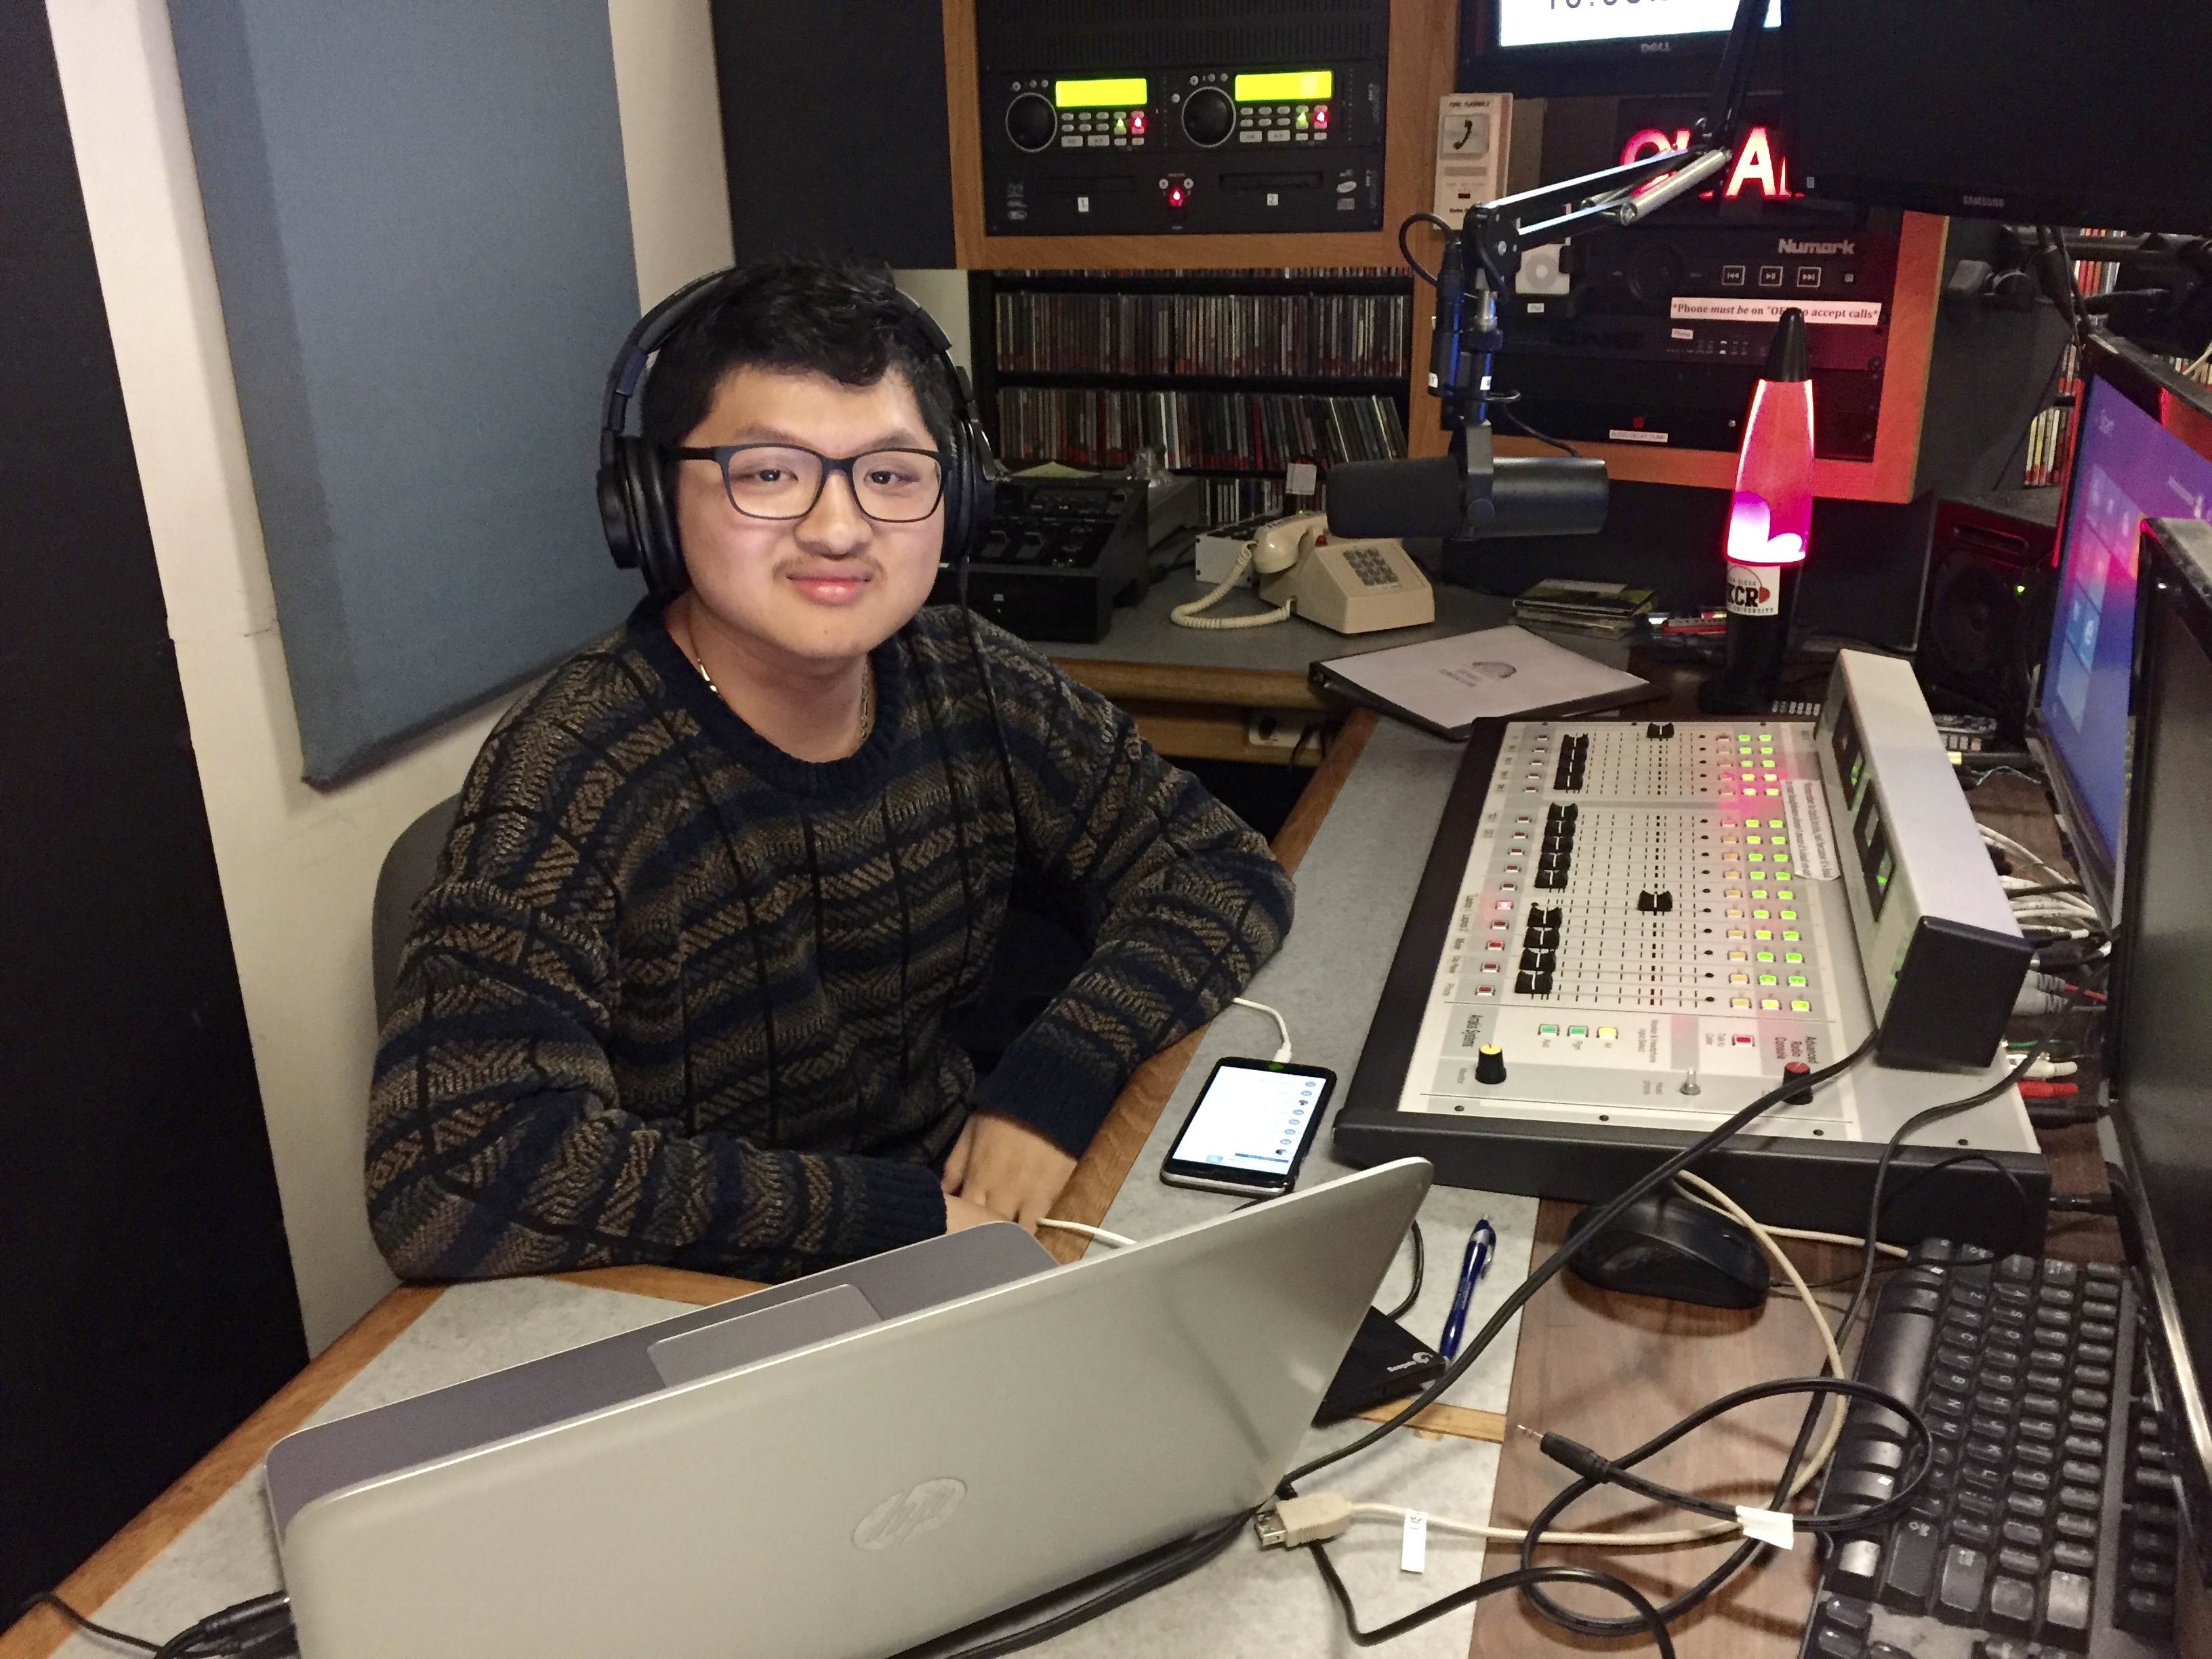 Christian Le, a music DJ at KCR, begins his playlist for the night in the studio.